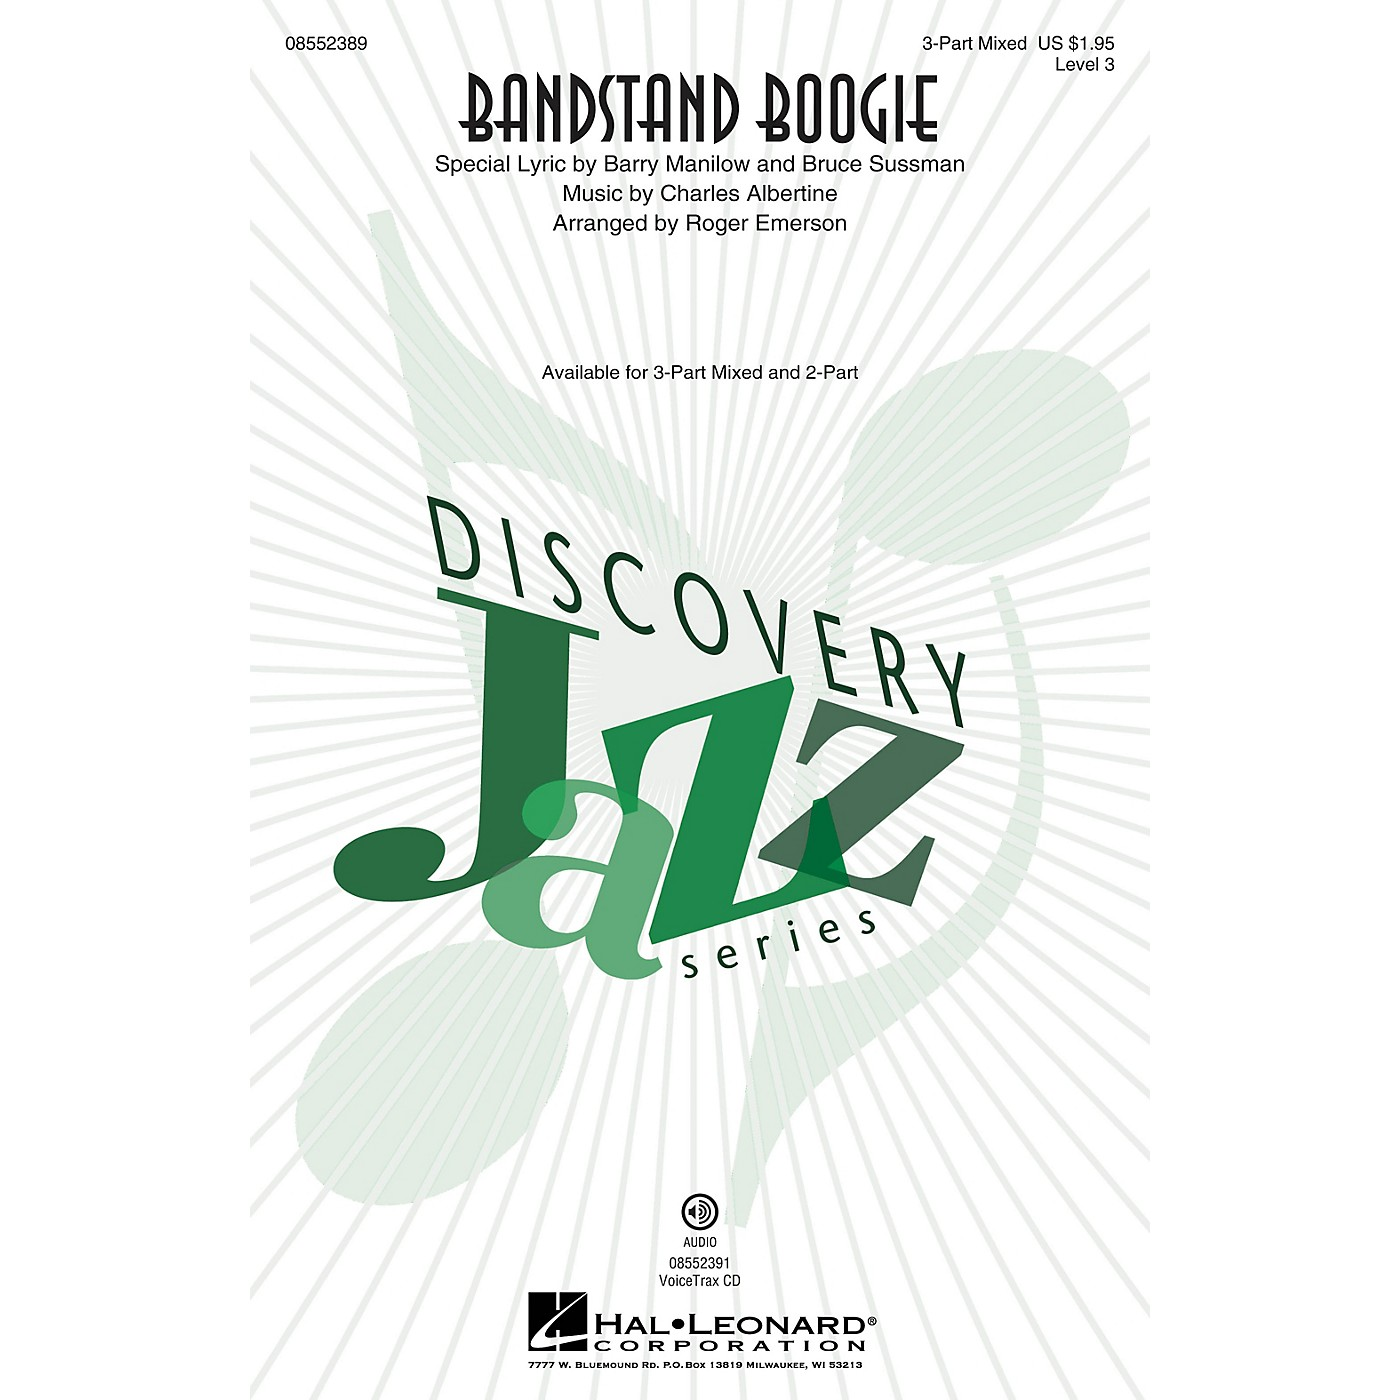 Hal Leonard Bandstand Boogie (Discovery Level 3) 3-Part Mixed arranged by Roger Emerson thumbnail